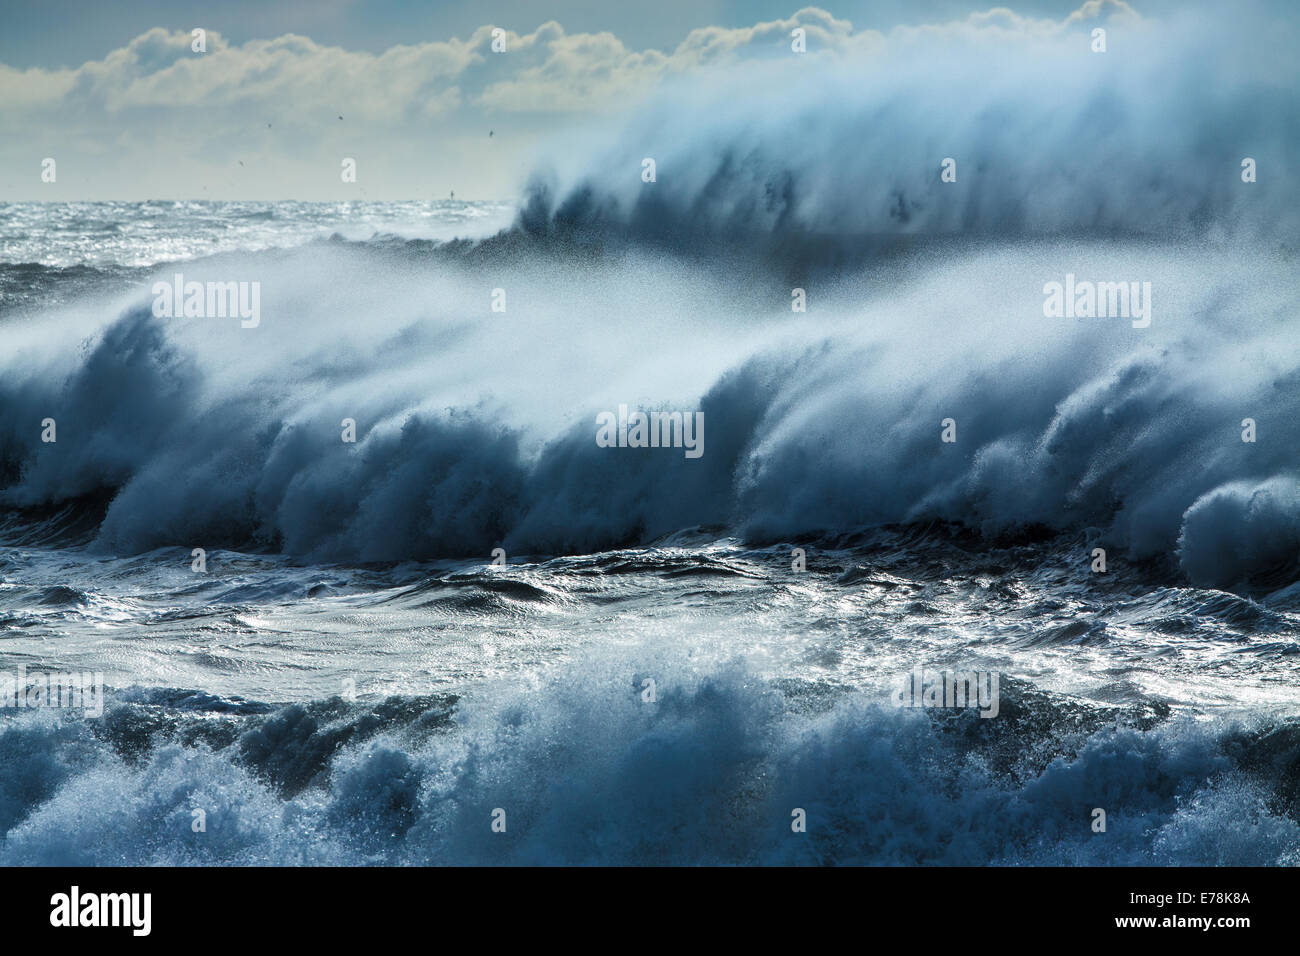 waves breaking on Renisfjara beach, southern Iceland - Stock Image